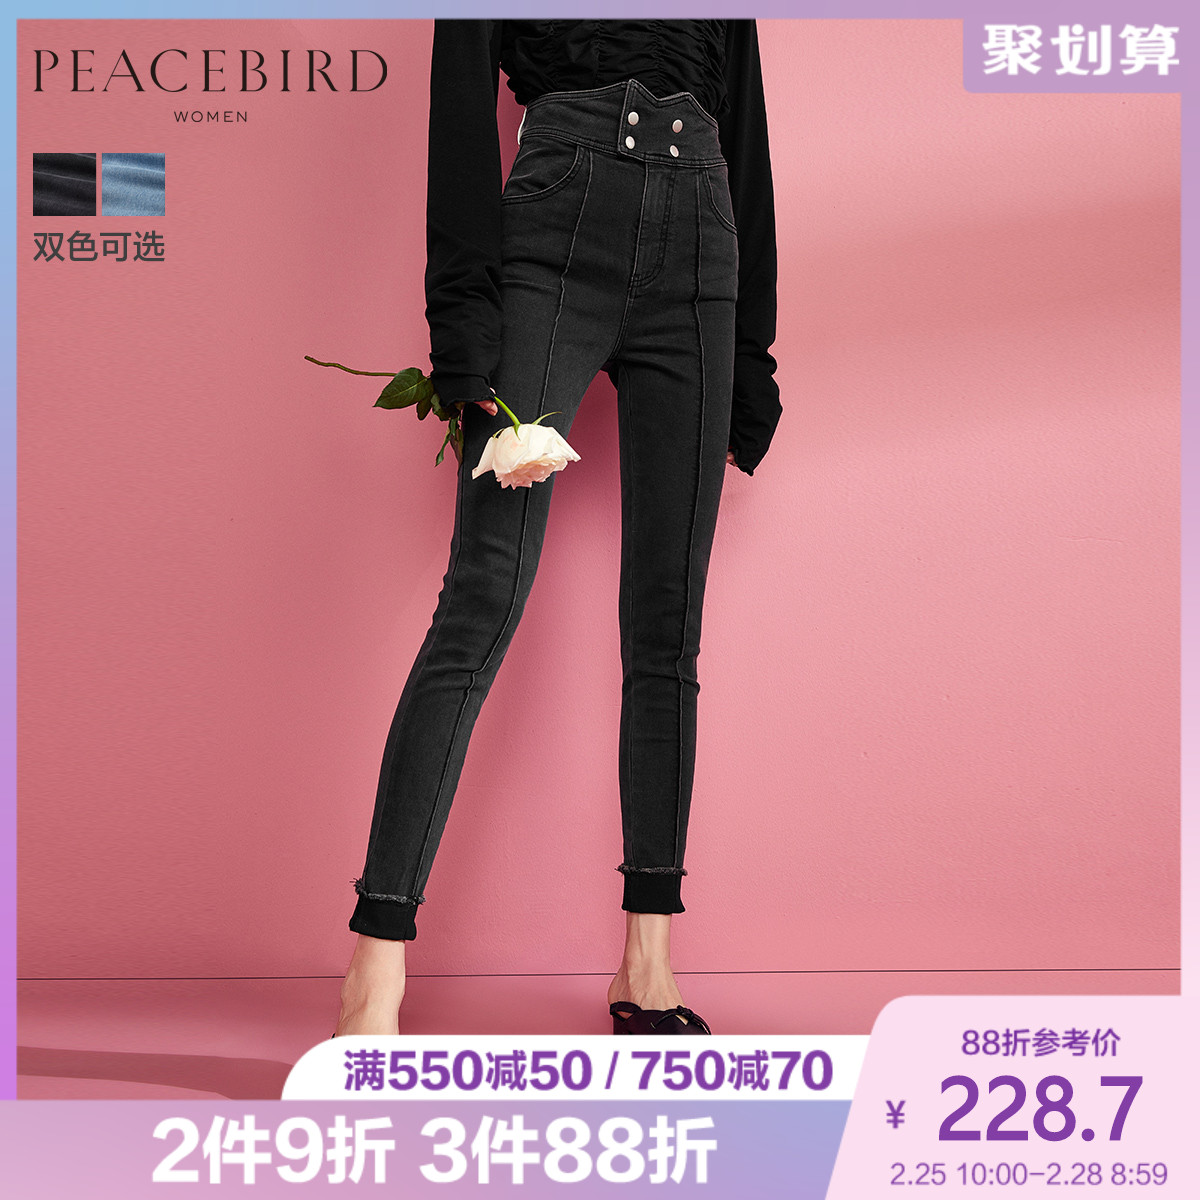 Taiping bird high waist jeans women's spring dress 2020 new design sense waist tight little feet women's jeans